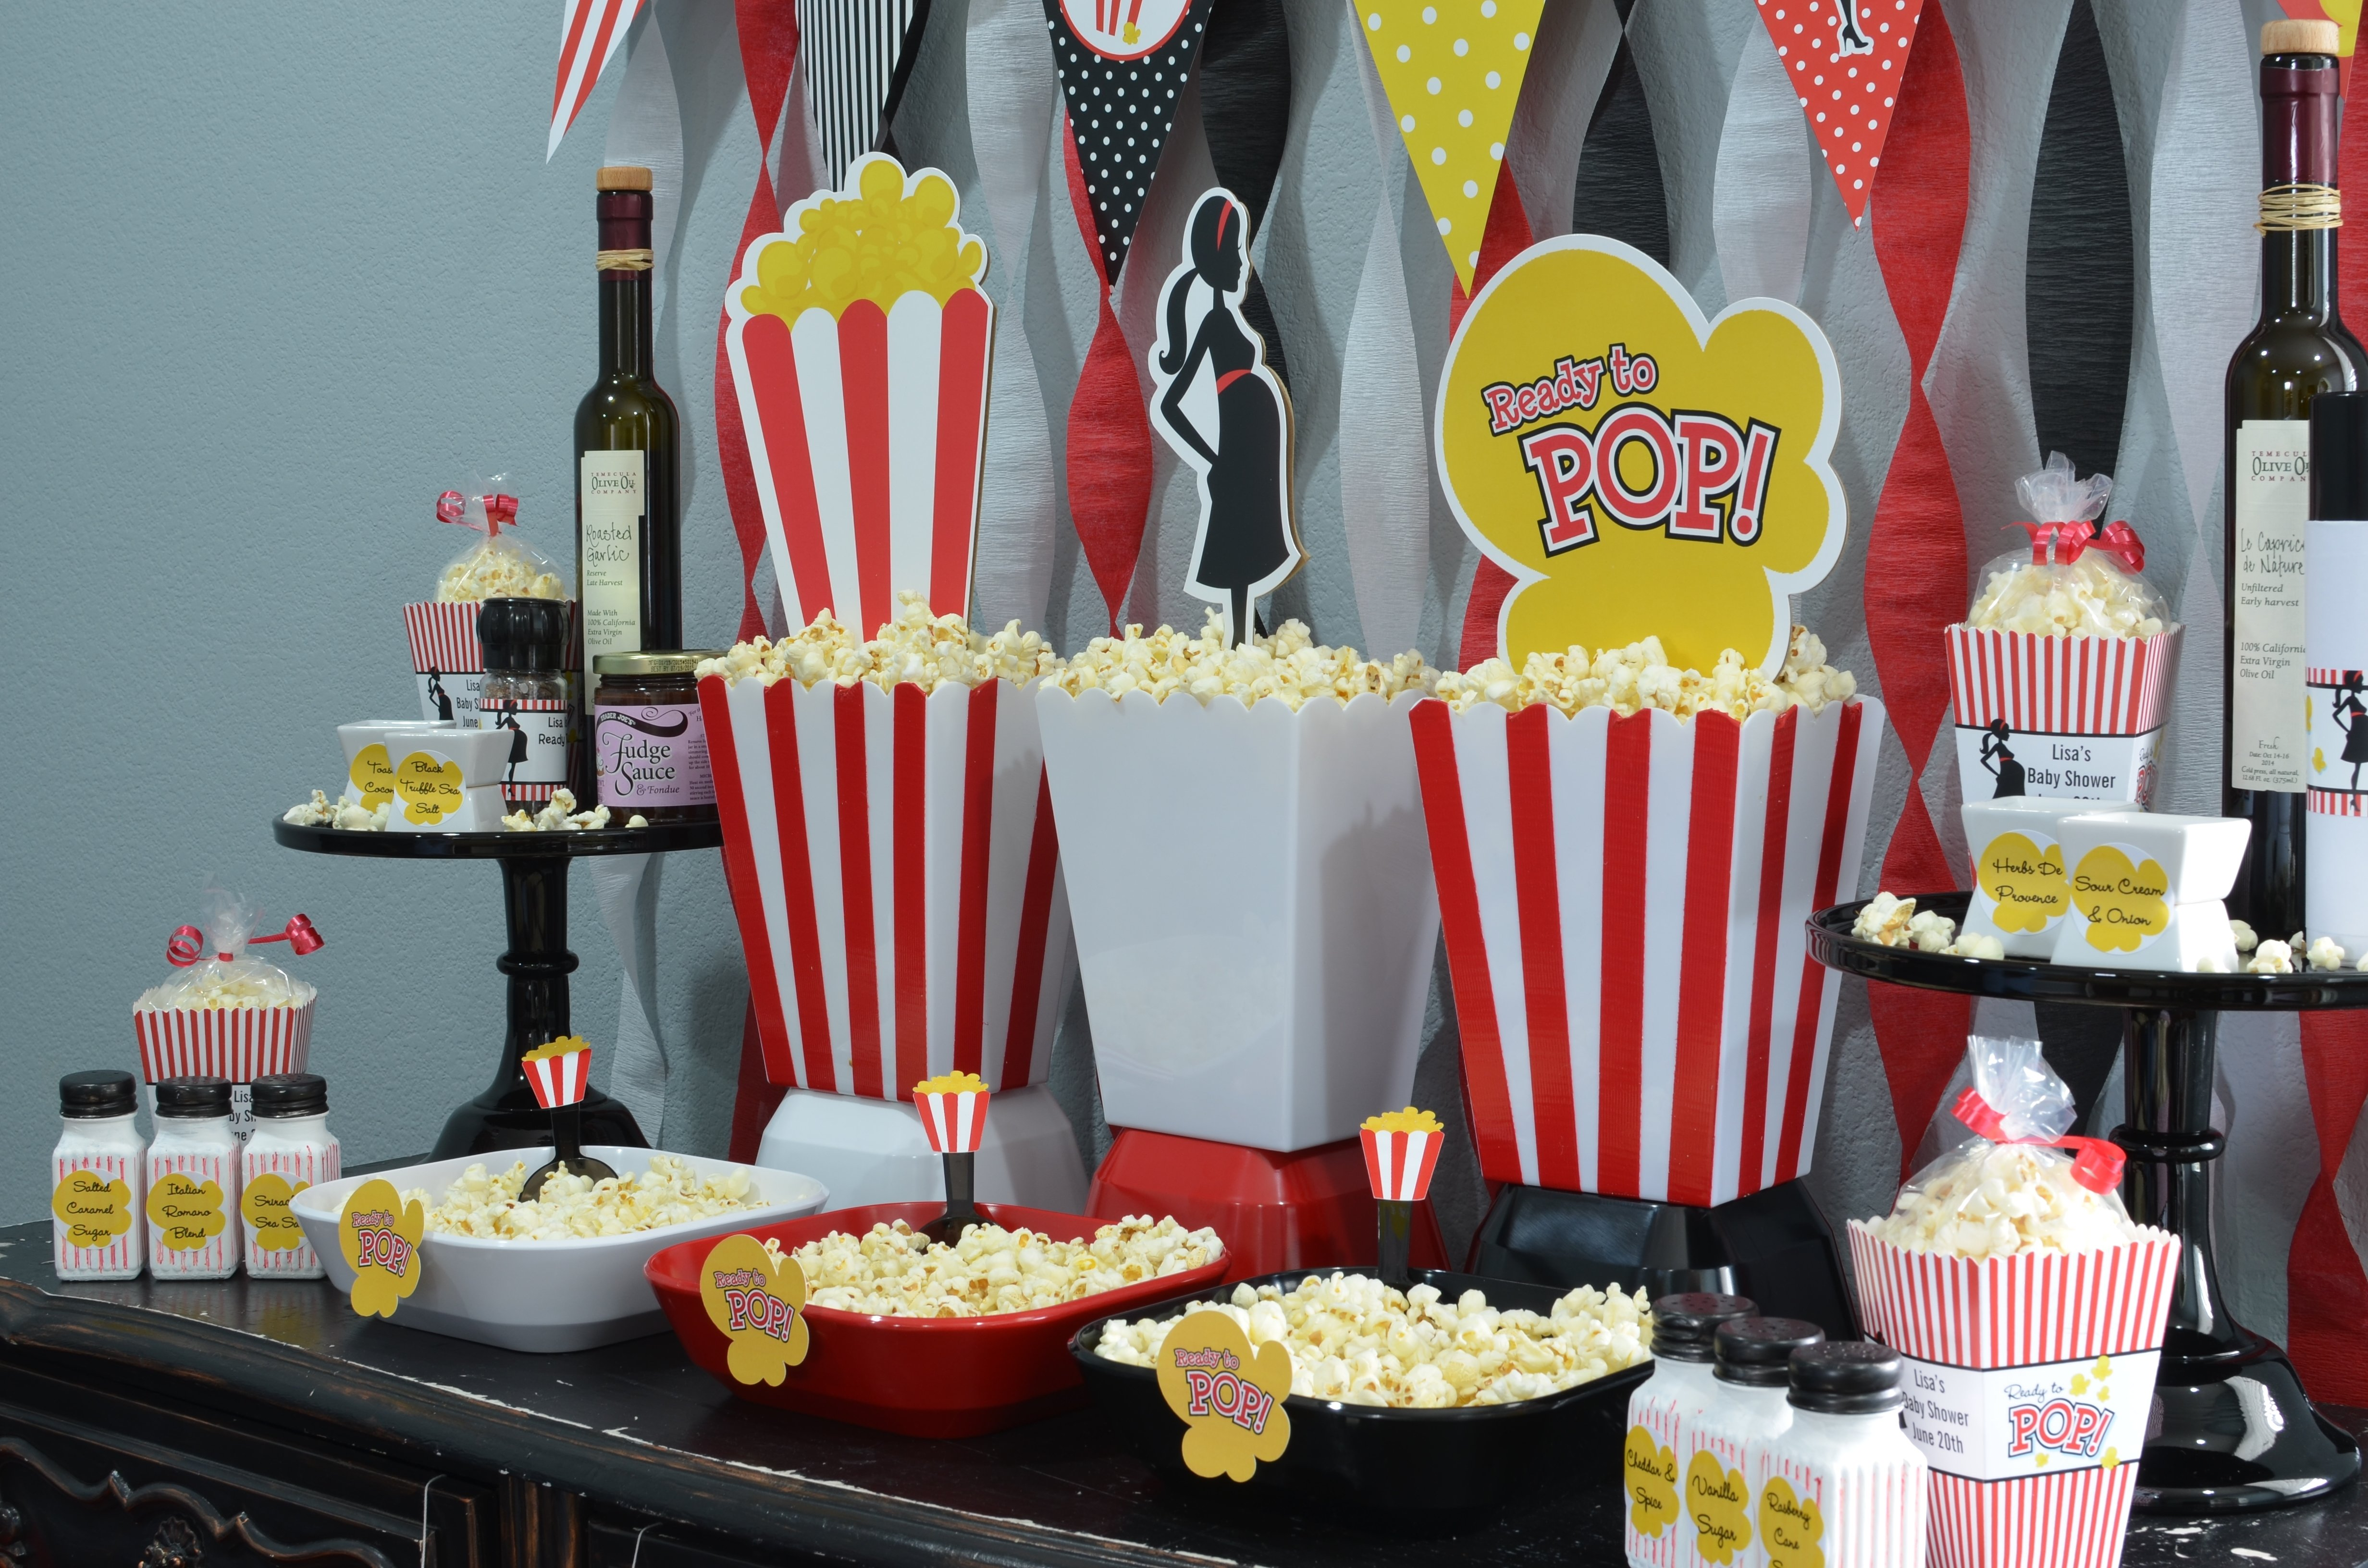 10 Attractive Ready To Pop Baby Shower Ideas ready to pop baby shower red cut out used as popcorn box decor